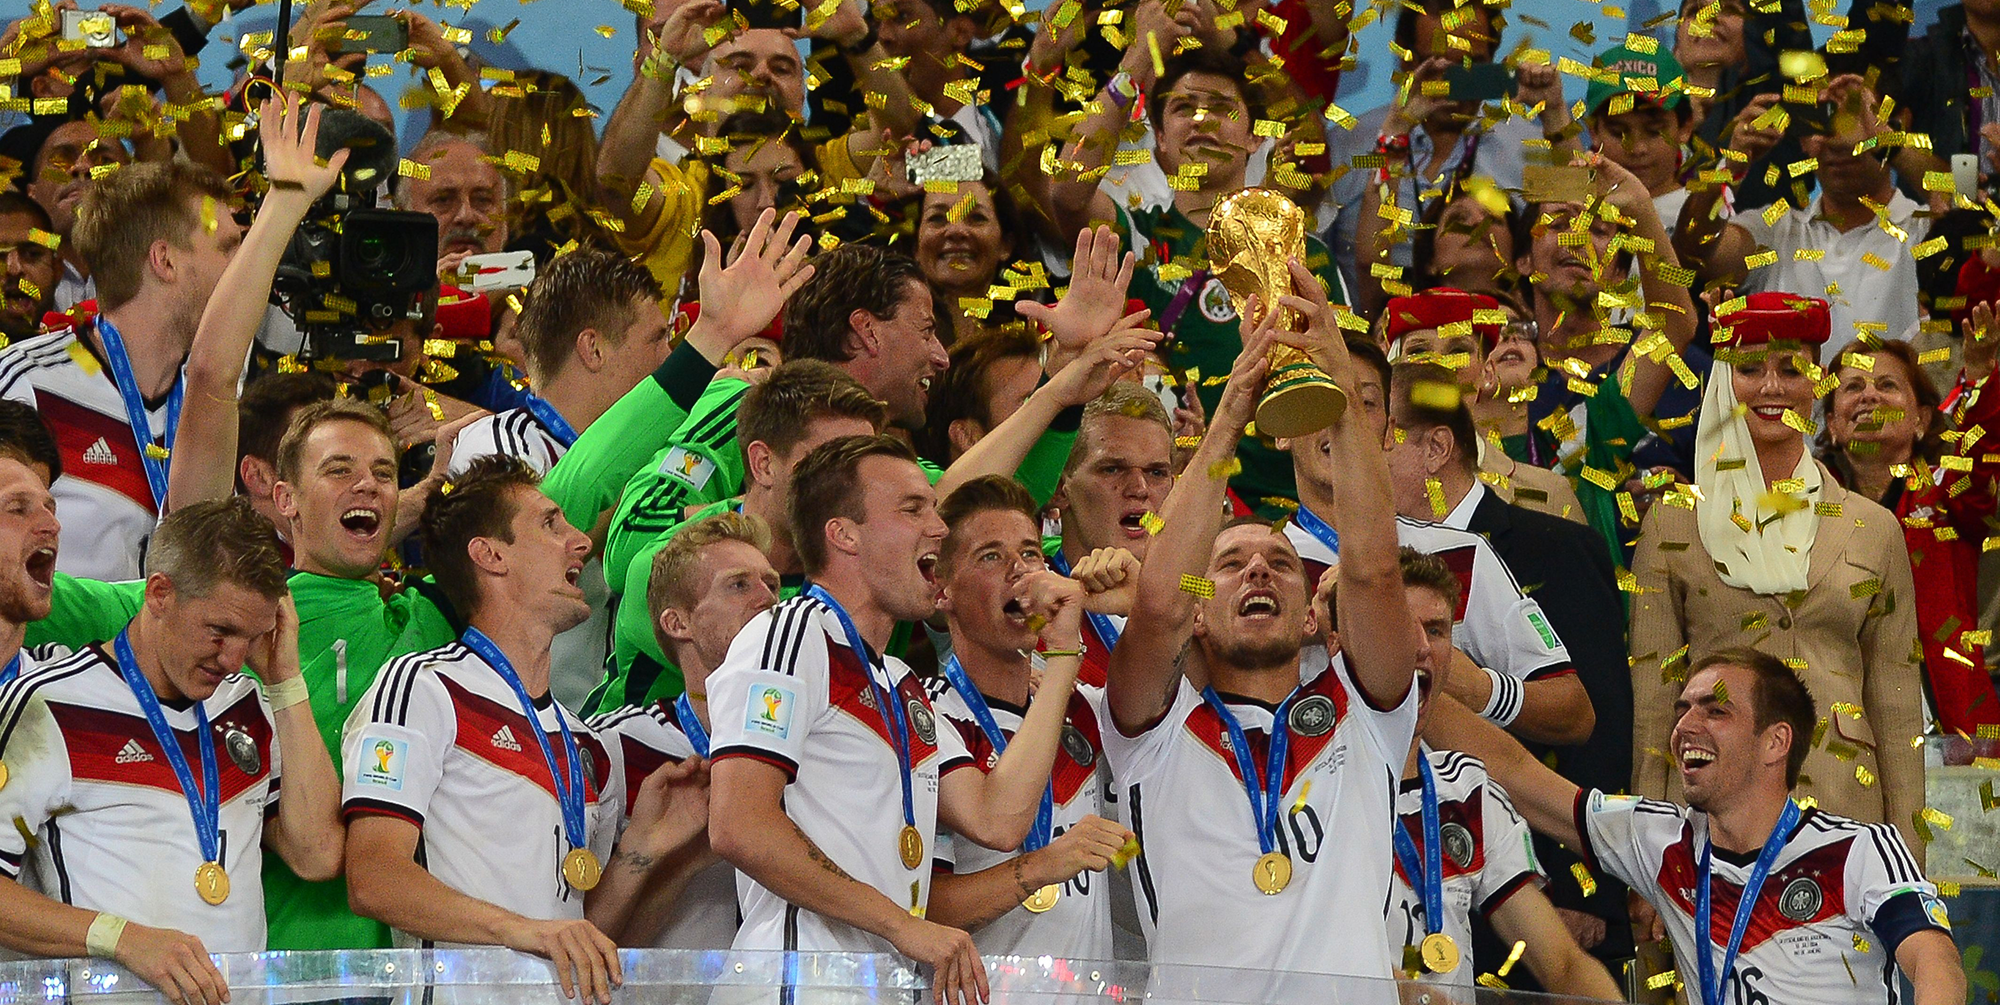 Germany lifts the 2014 FIFA World Cup after beating Argentina 1-0.